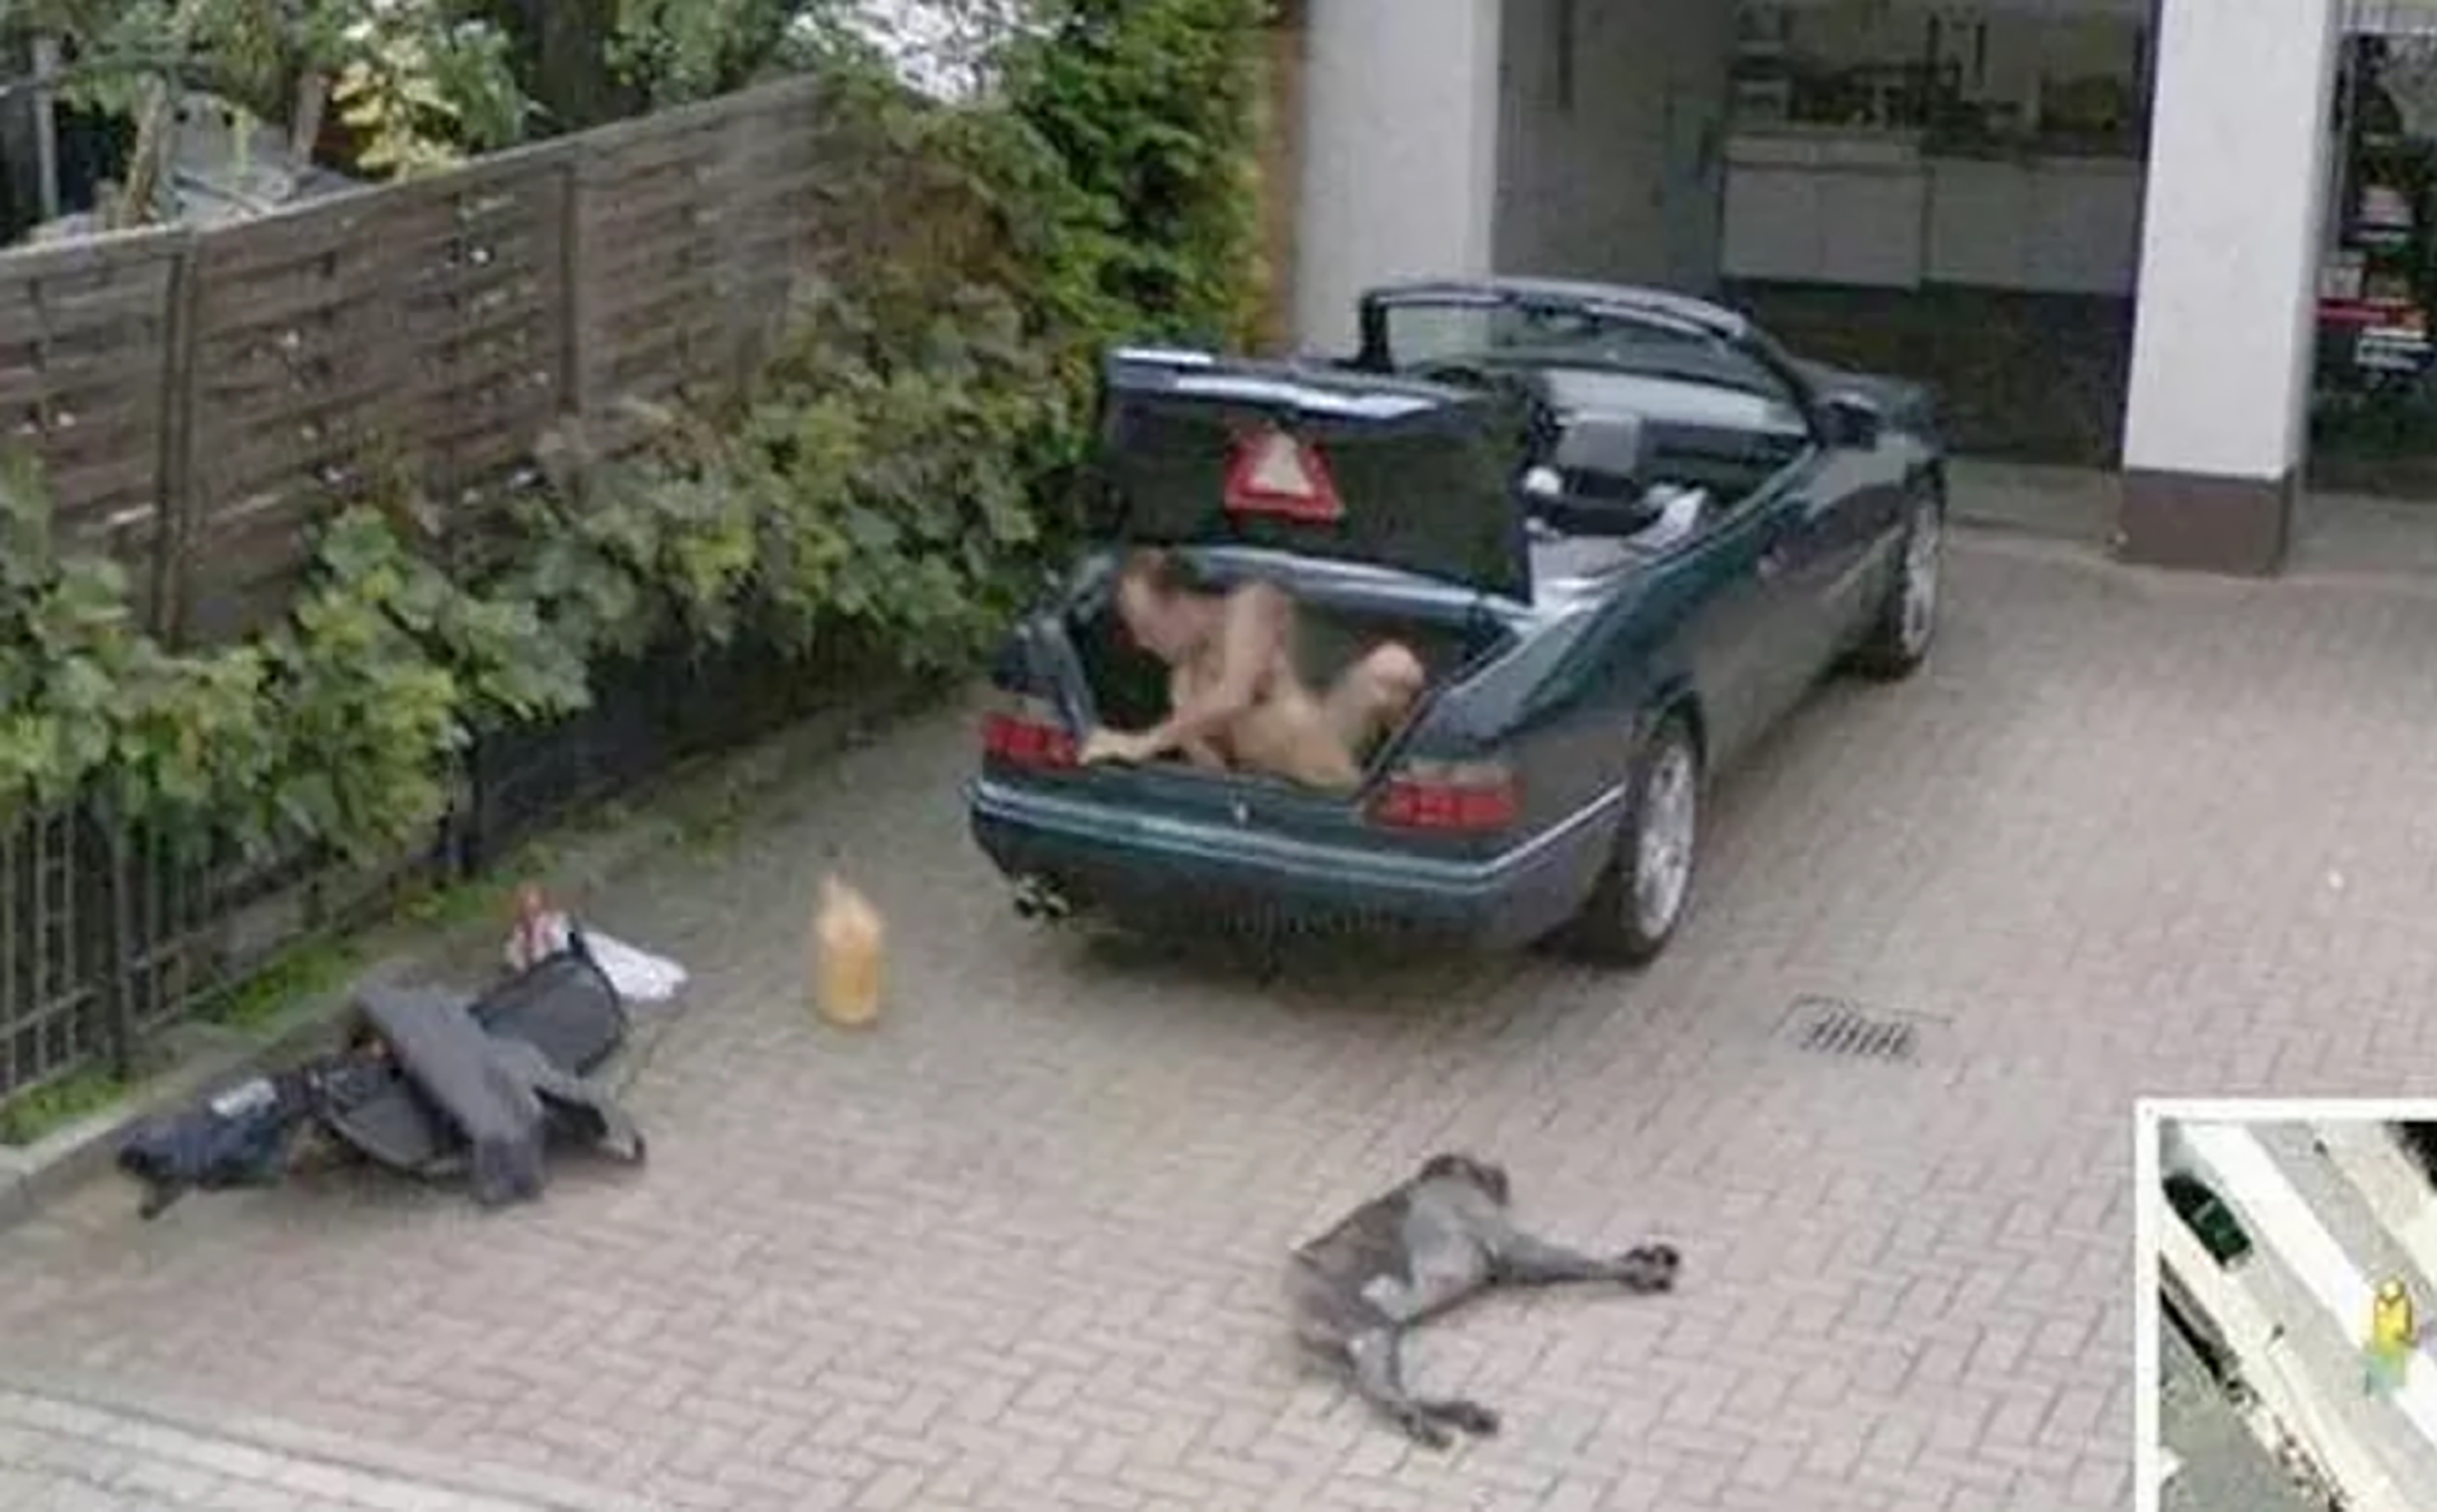 Nudes from google earth